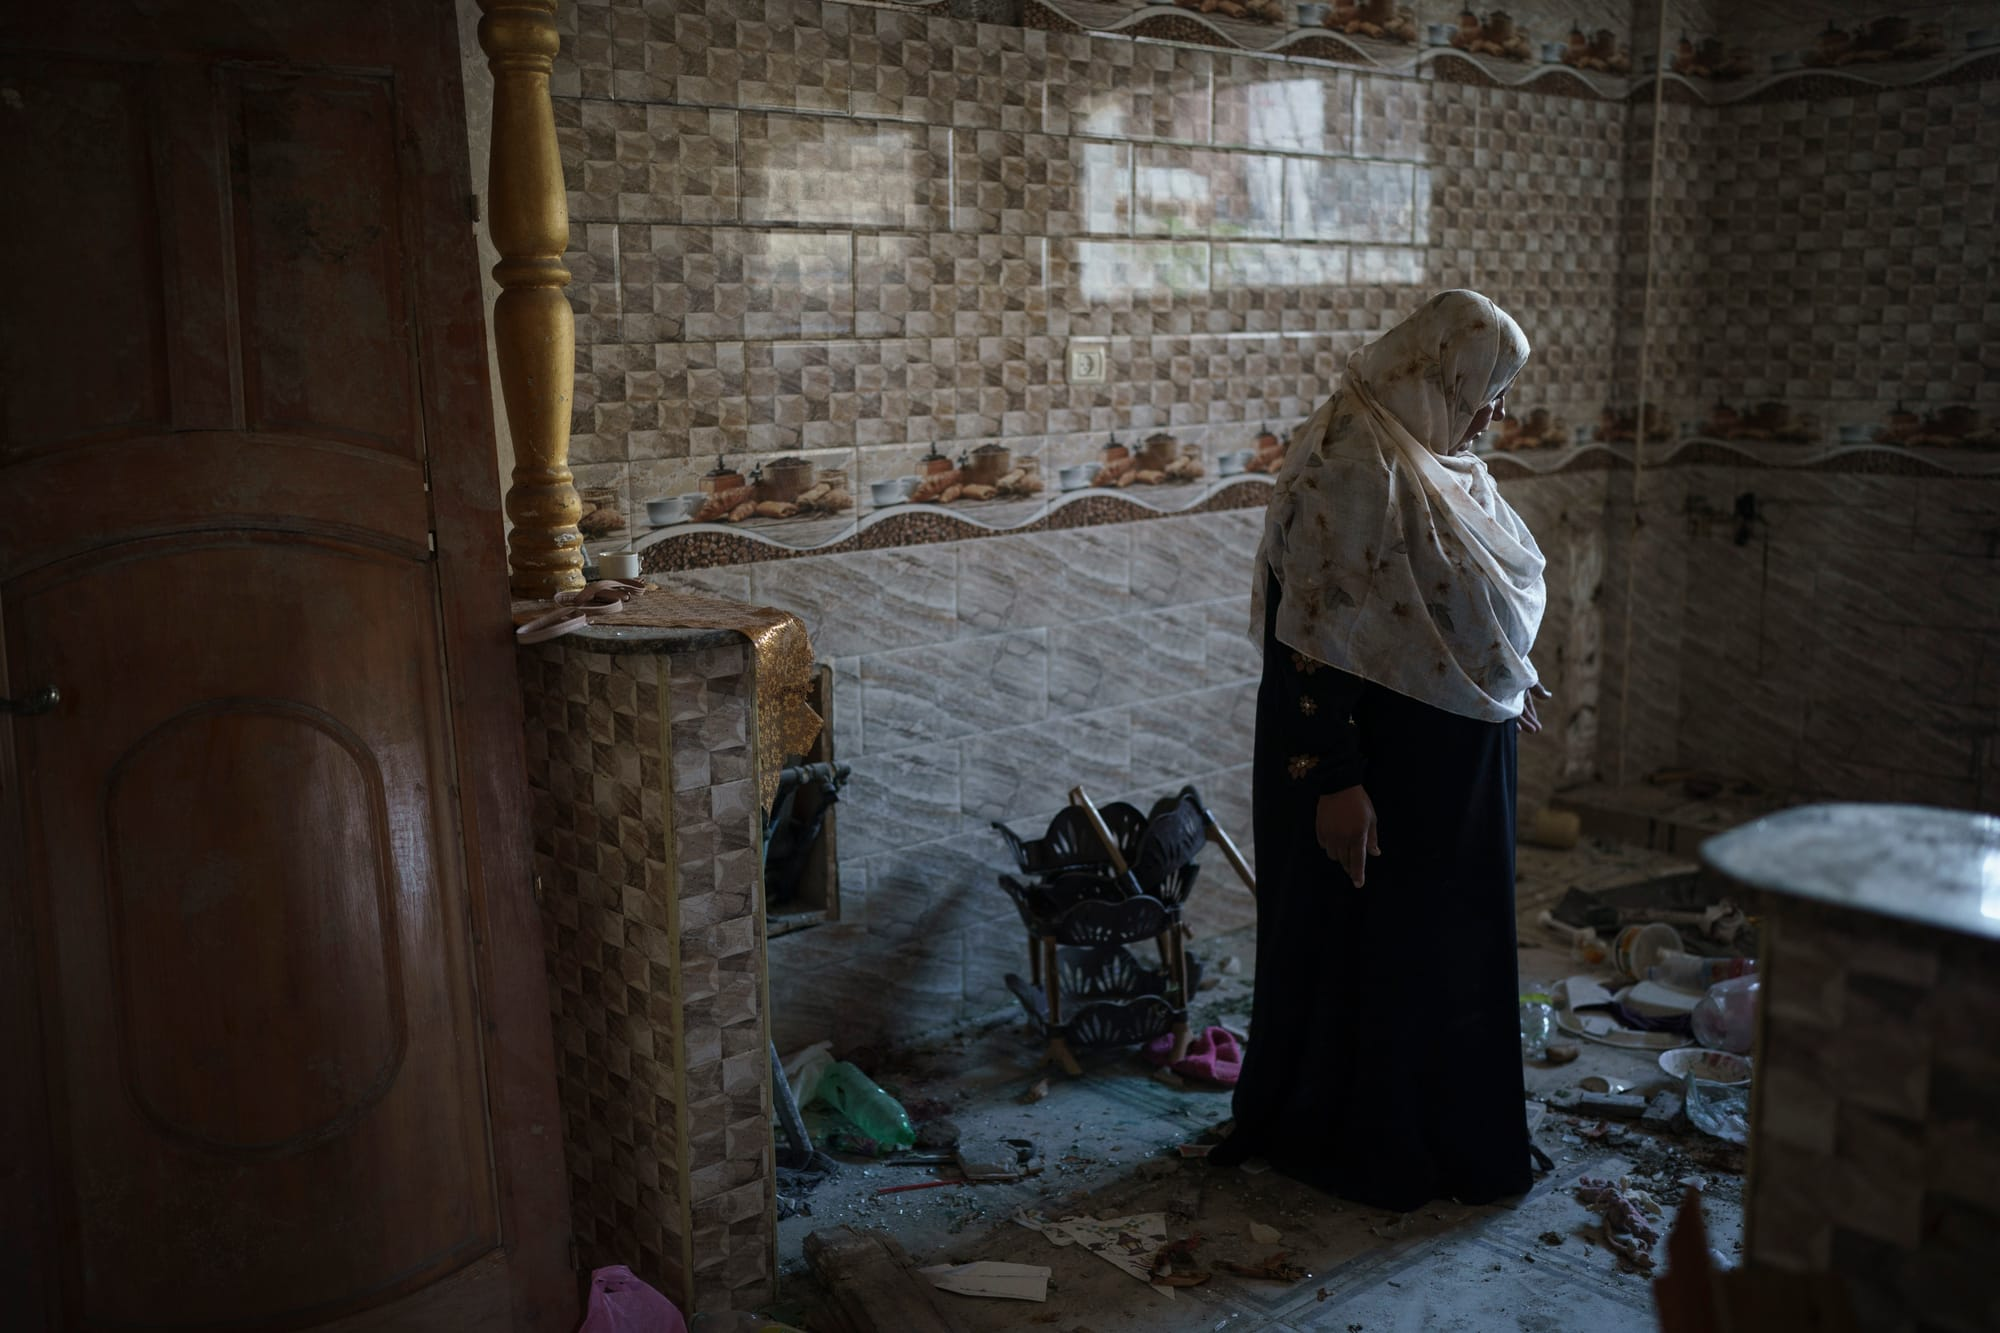 A woman, Khaldyia Nassir, stands in her house that had been heavily damaged by airstrikes in the recent 11-day war in Beit Hanoun.